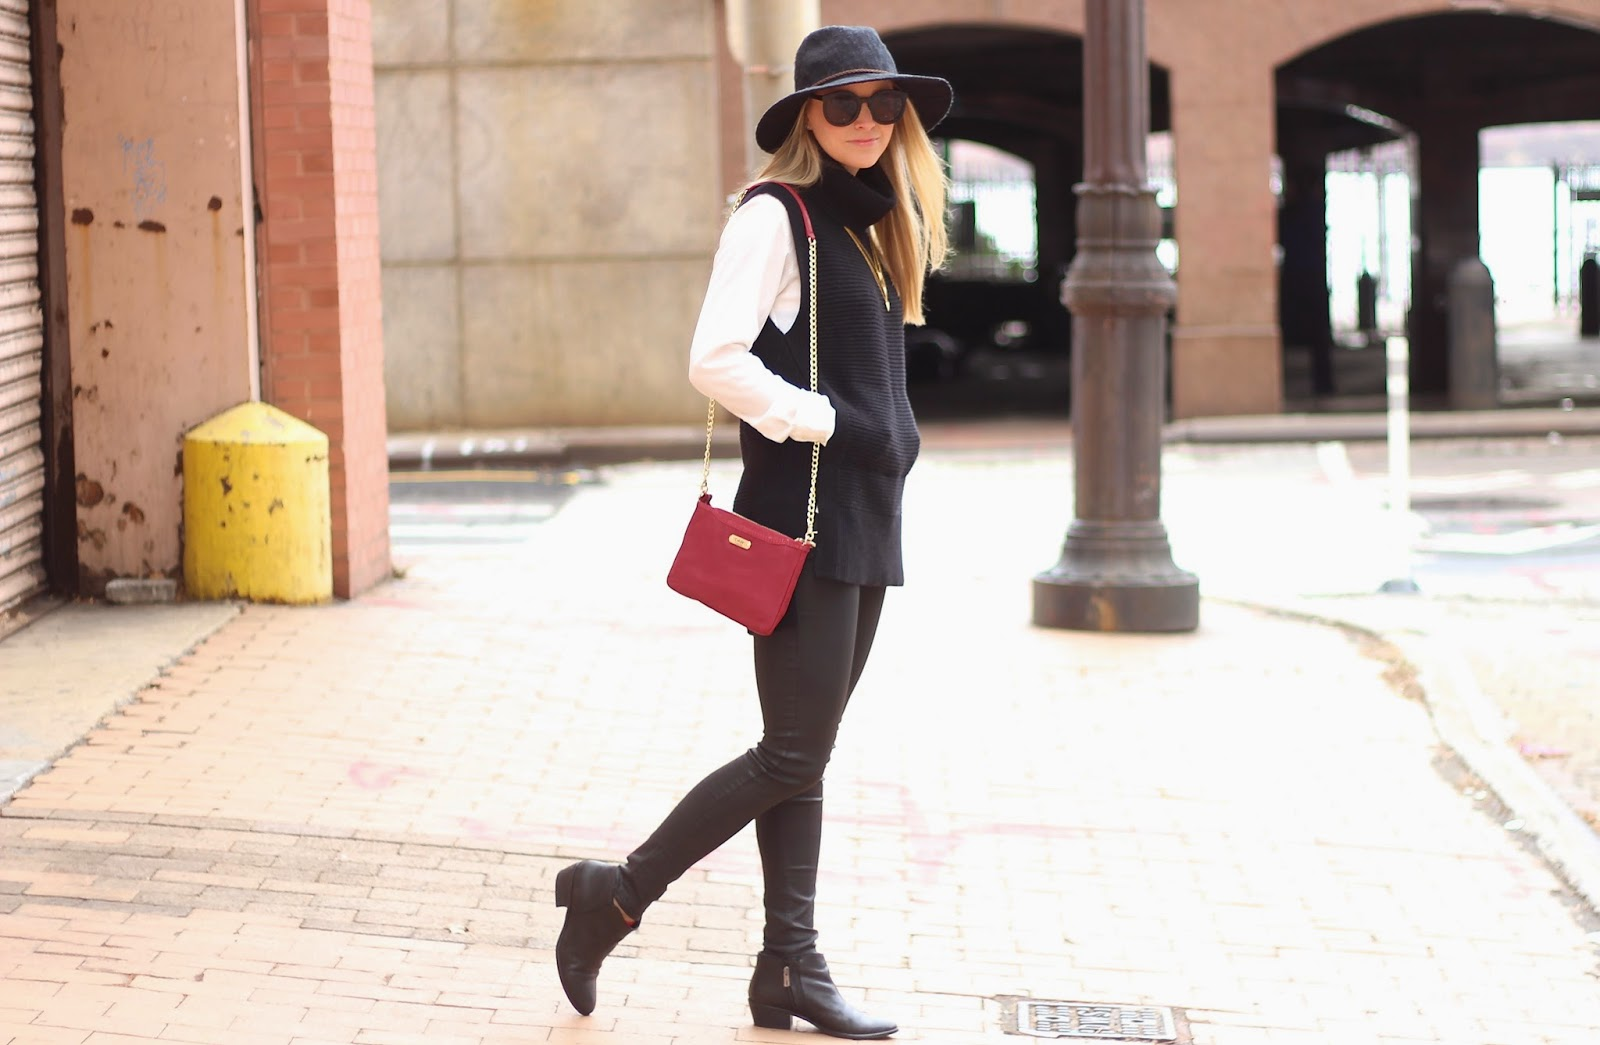 banana republic tunic sweater, coated denim, marissa webb, black floppy hat, ankle booties